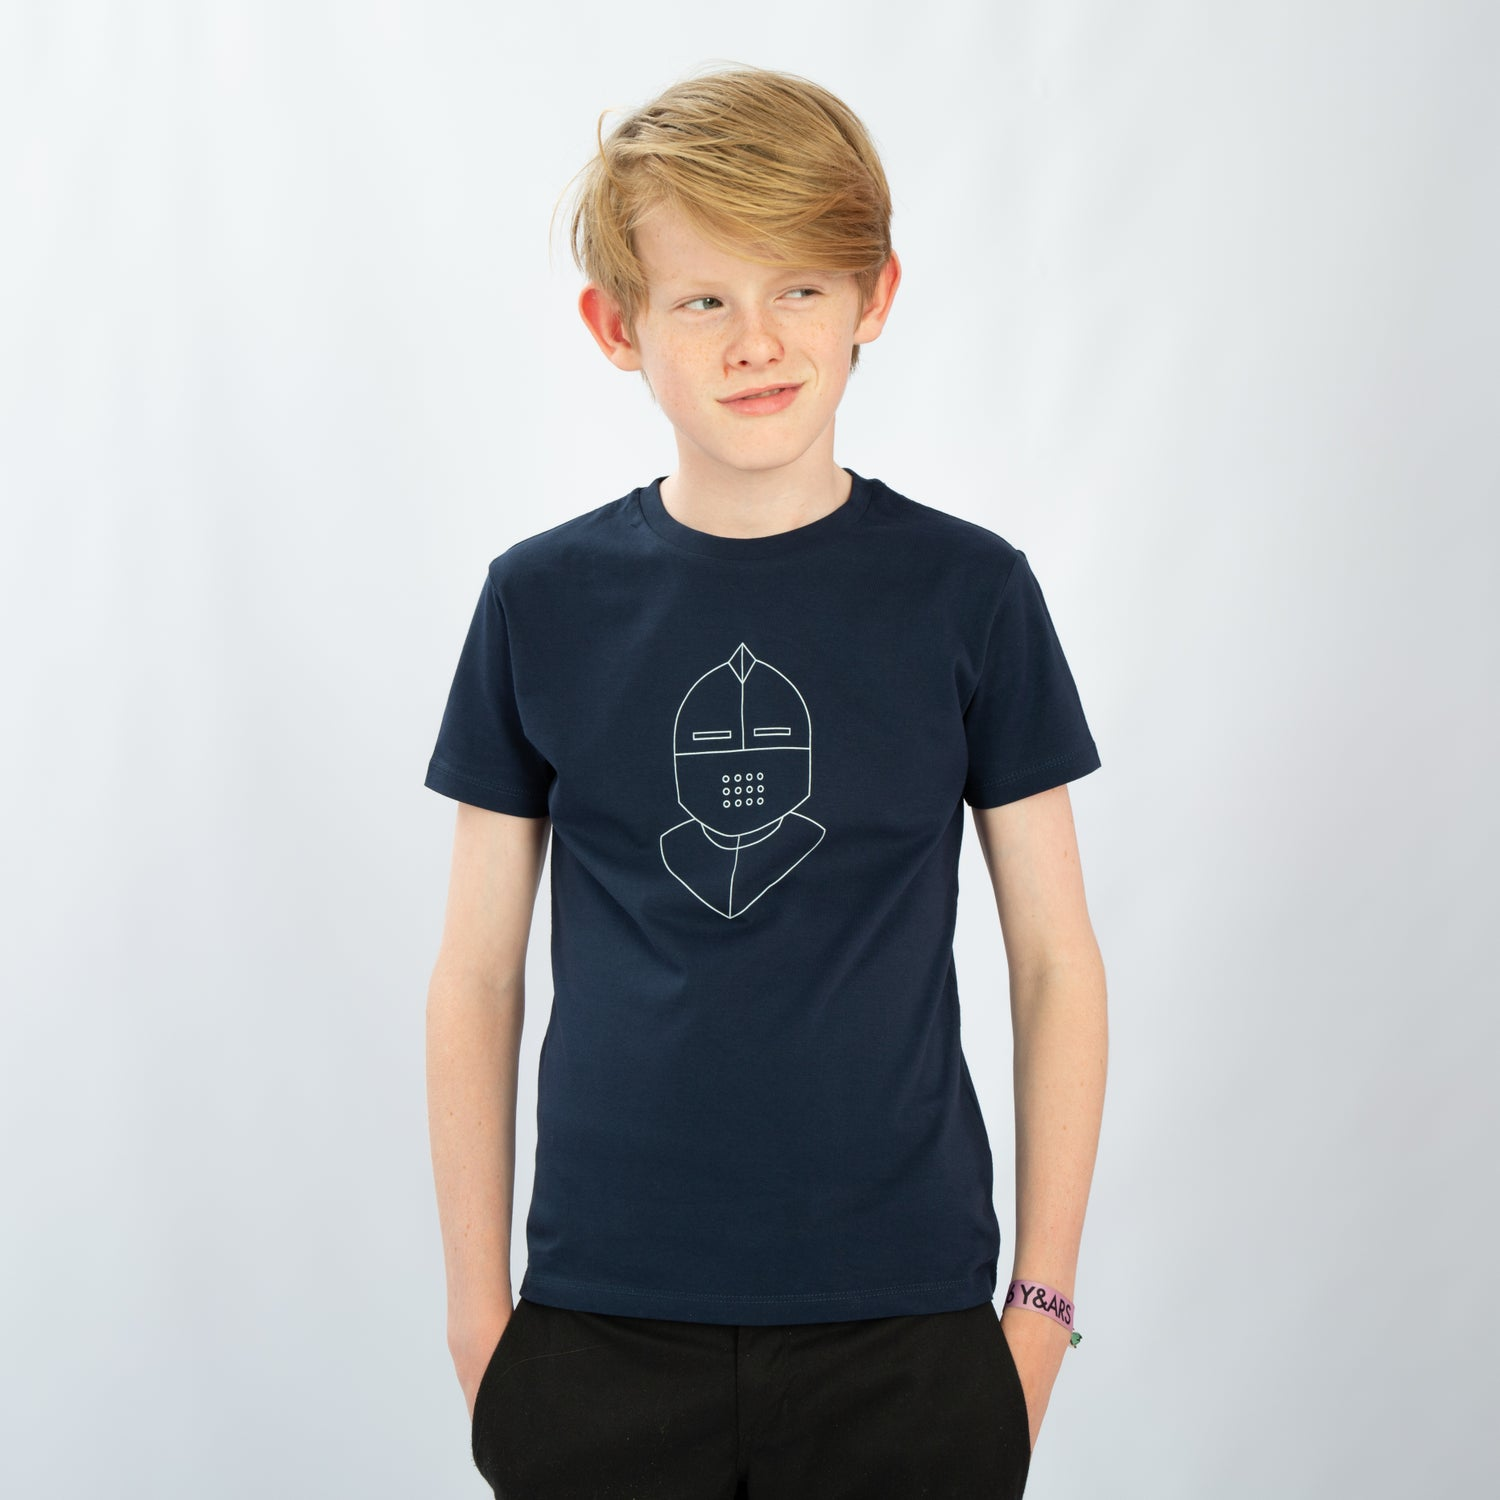 Image of T-SHIRT BOY short sleeve KNIGHT navy